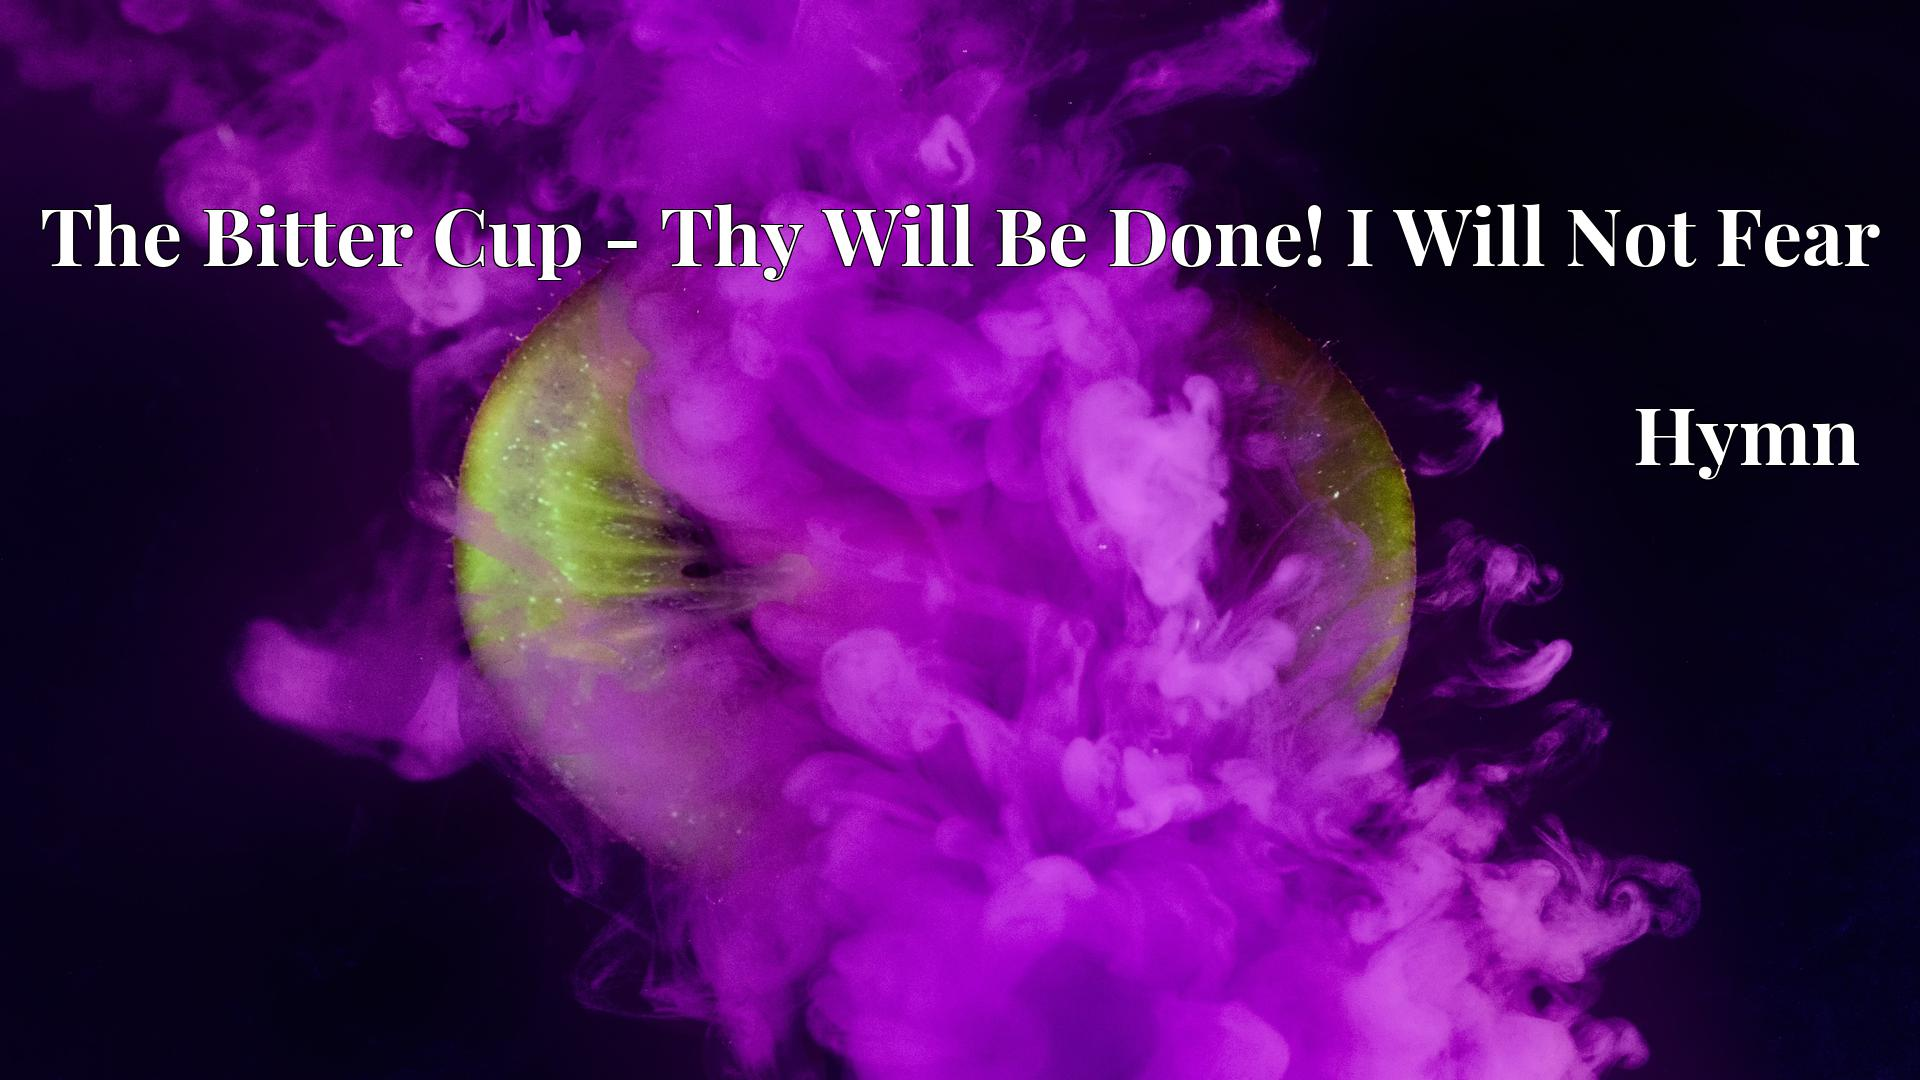 The Bitter Cup - Thy Will Be Done! I Will Not Fear - Hymn